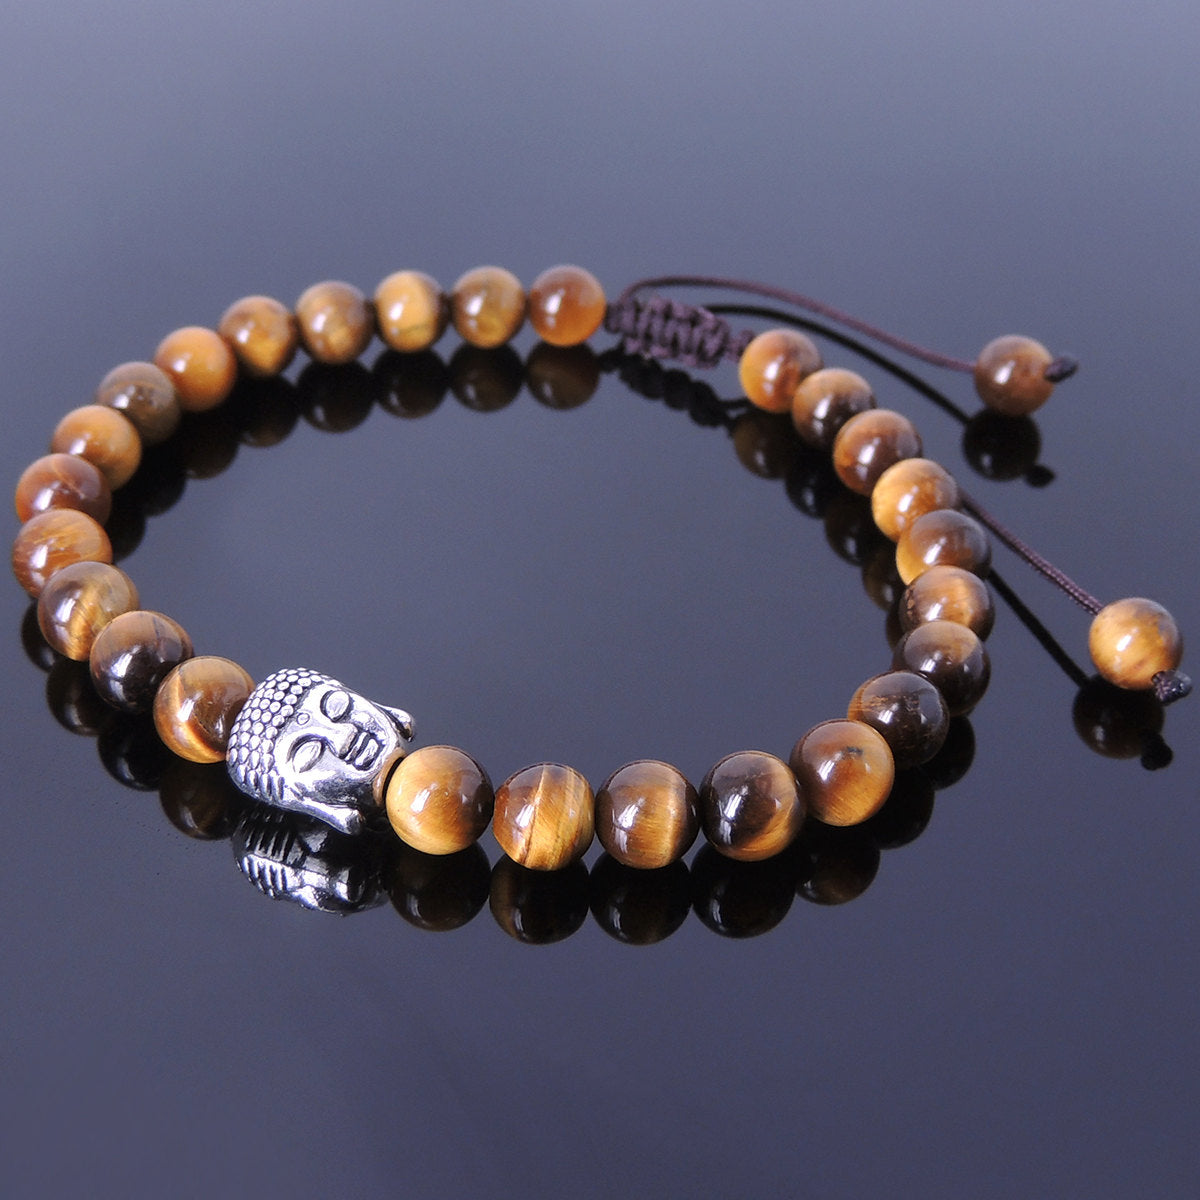 6mm Brown Tiger Eye Adjustable Braided Stone Bracelet with Tibetan Silver Sakyamuni Buddha Bead - Handmade by Gem & Silver TSB111